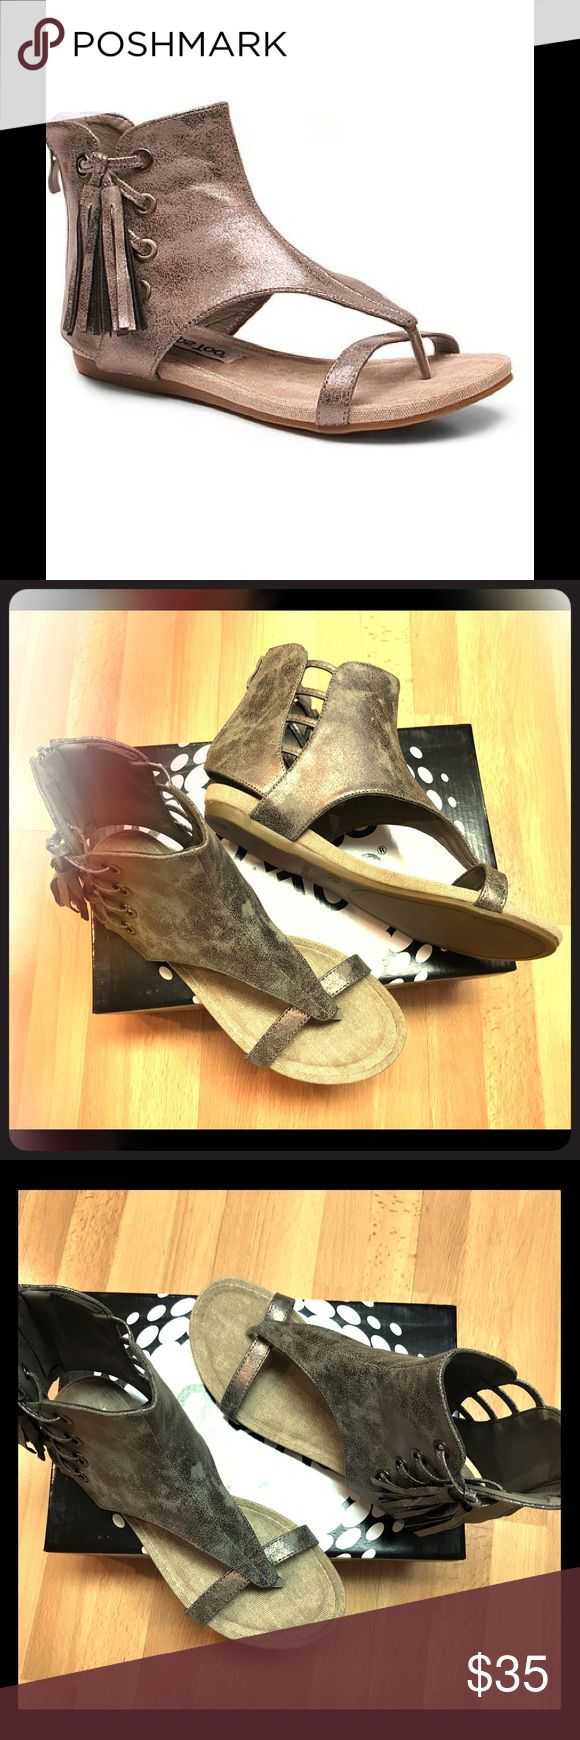 """Two Lips Pewter Sandal NEW, NEVER WORN. Sizing: True to size. - Thong toe - Solid T-strap - Back zip closure - Side cutout detail - Fringe detail - Approx. 1"""" heel - Imported Materials Synthetic upper, manmade sole Two Lips Shoes Sandals"""